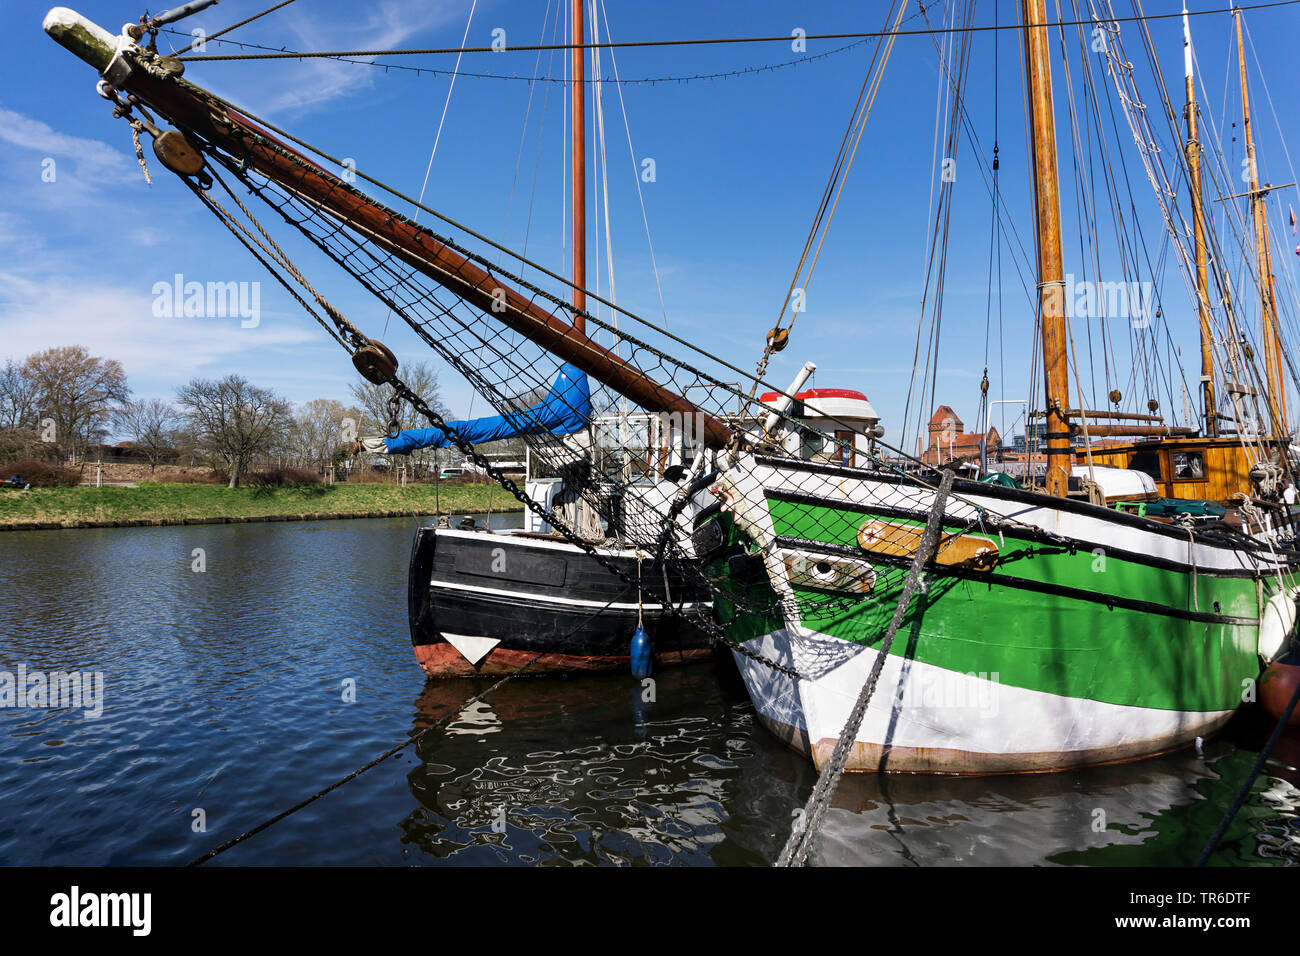 historical ships on river Trave in Luebeck, Germany, Schleswig-Holstein, Luebeck - Stock Image